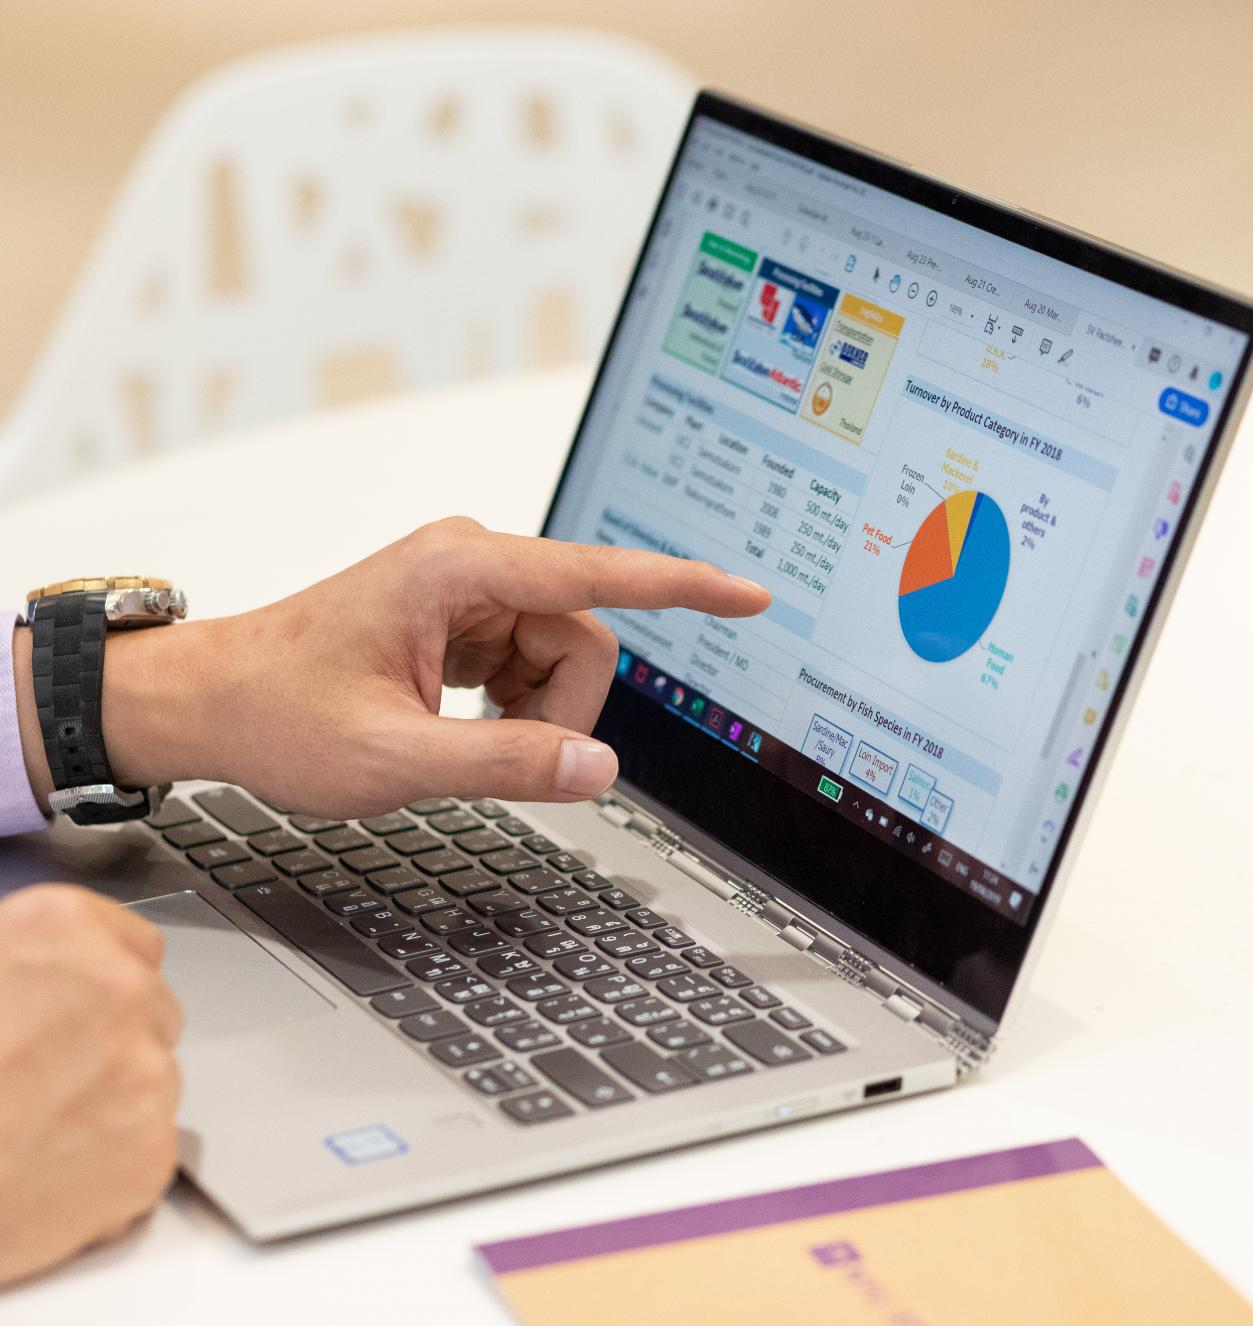 man pointing to laptop screen which displays various colorful charts and graphs.